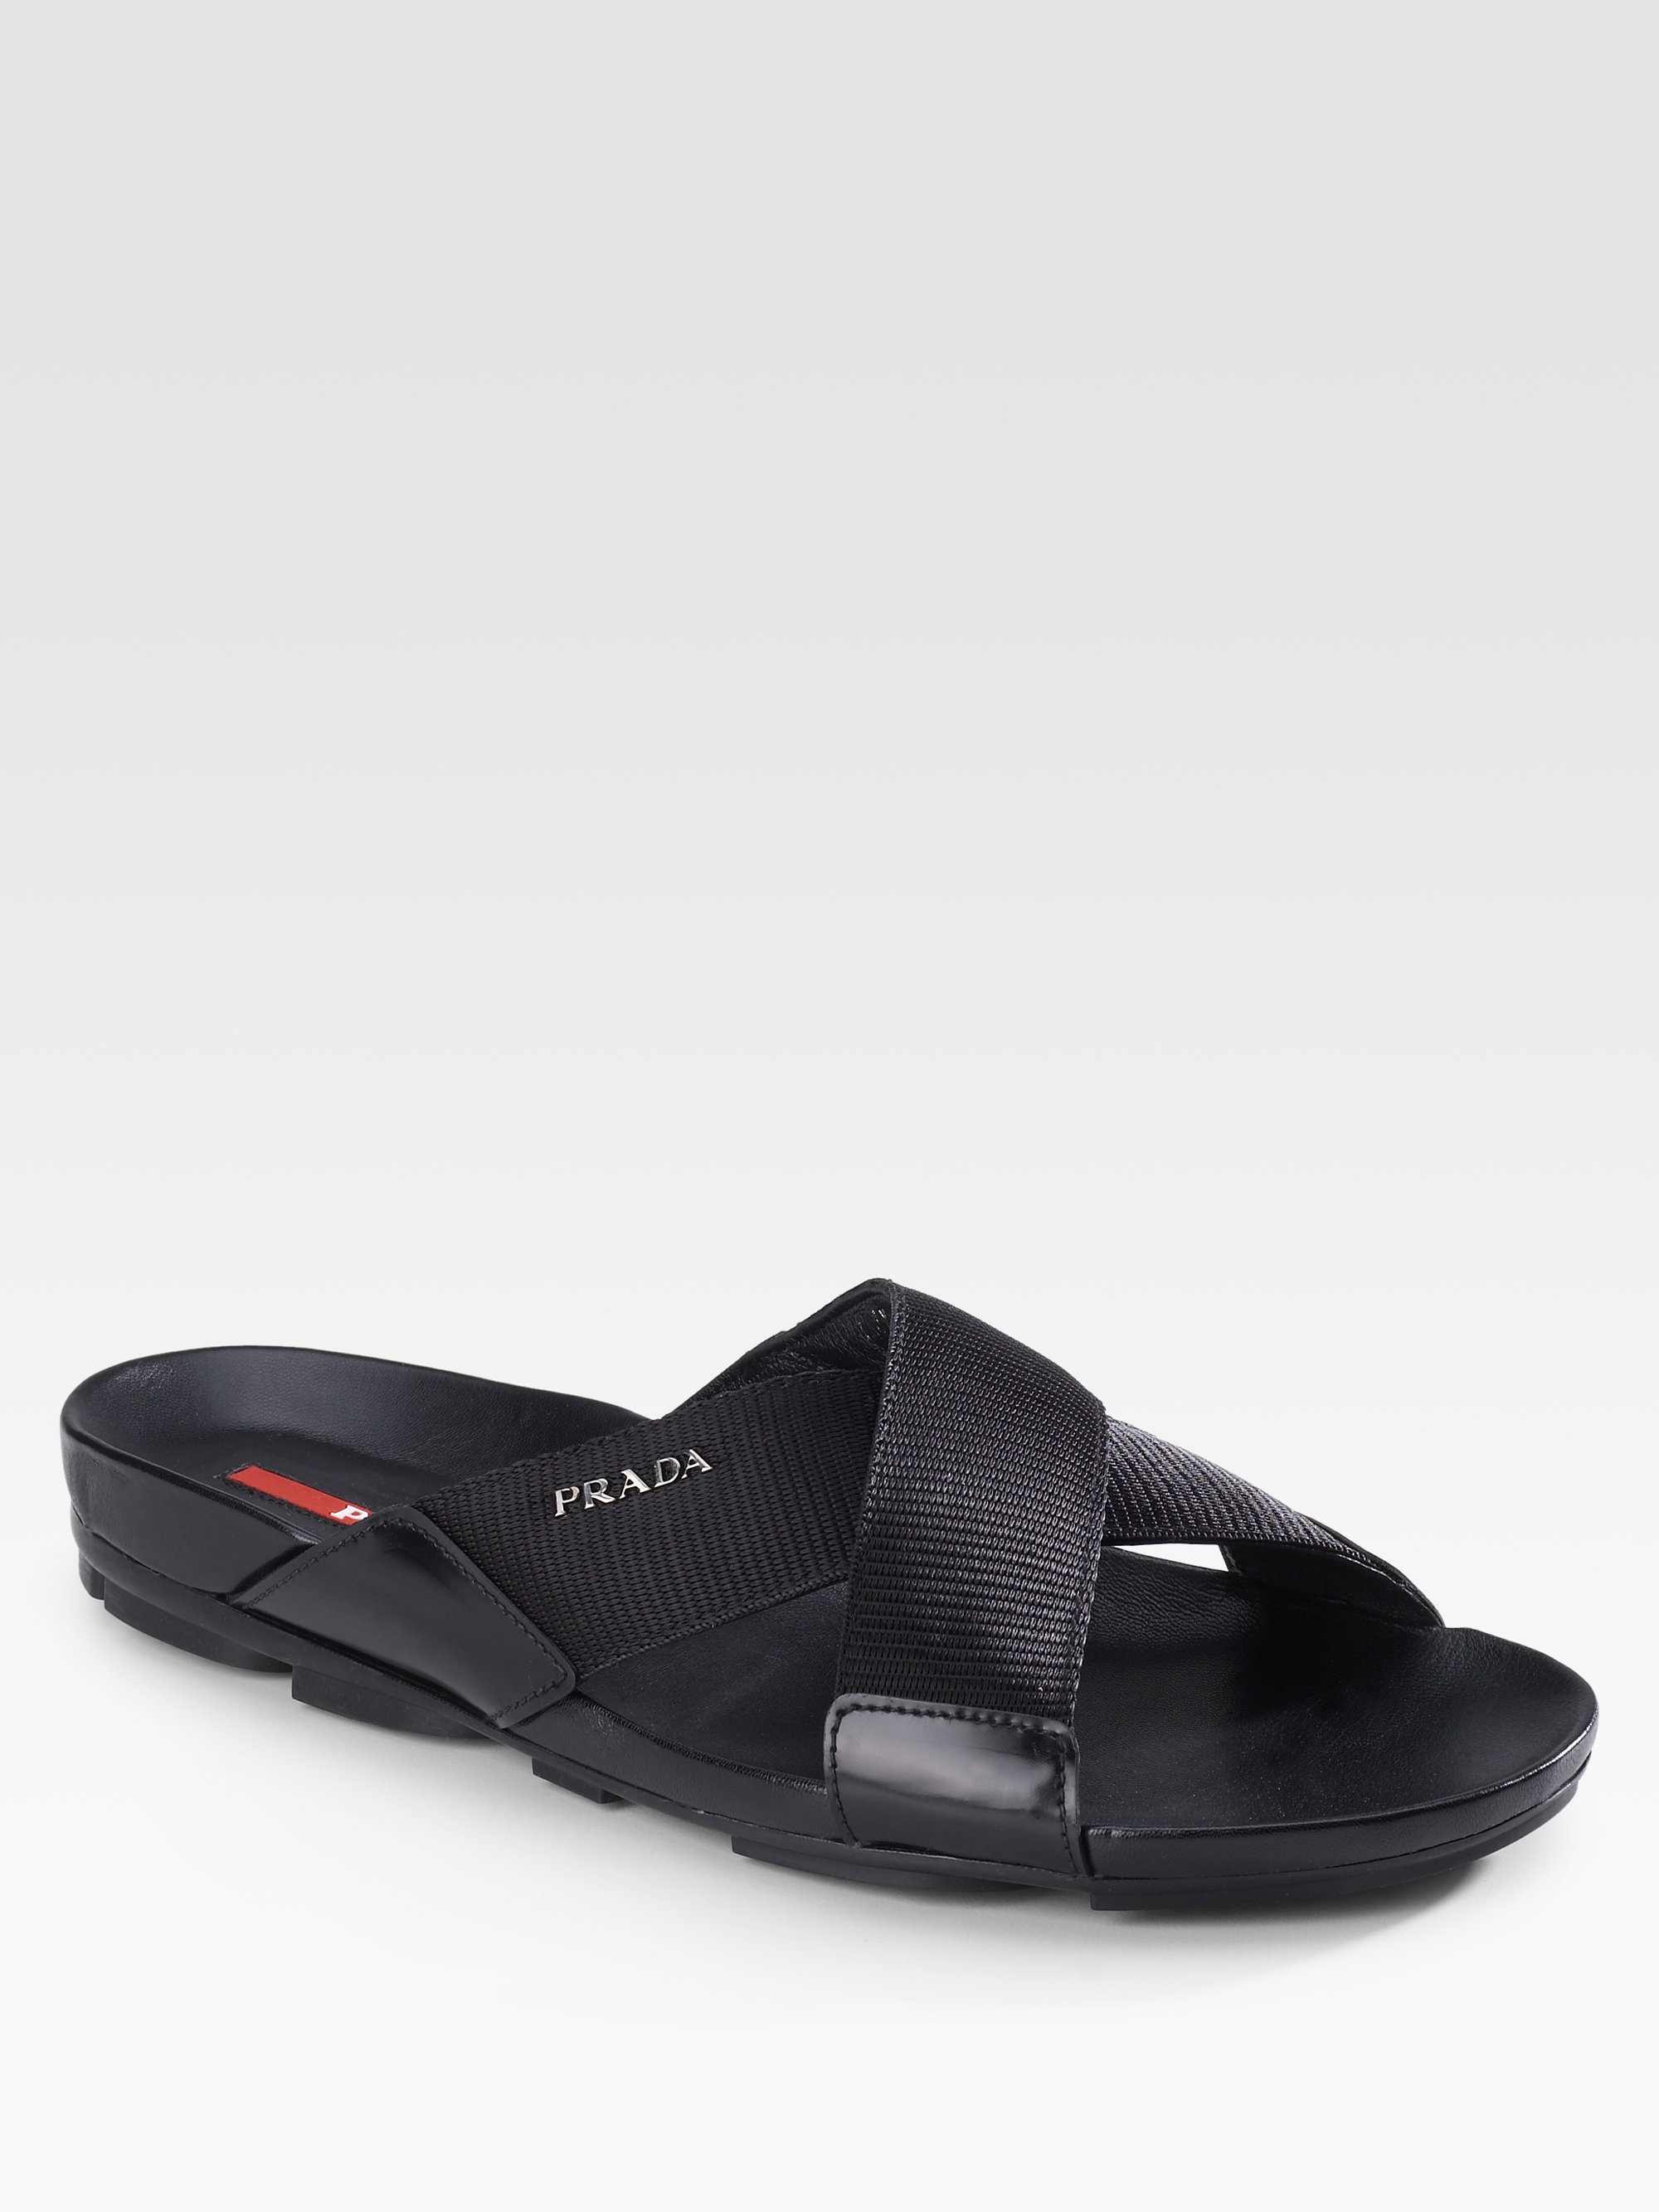 2418b66125c625 Prada Leather Sandals in Black for Men - Lyst